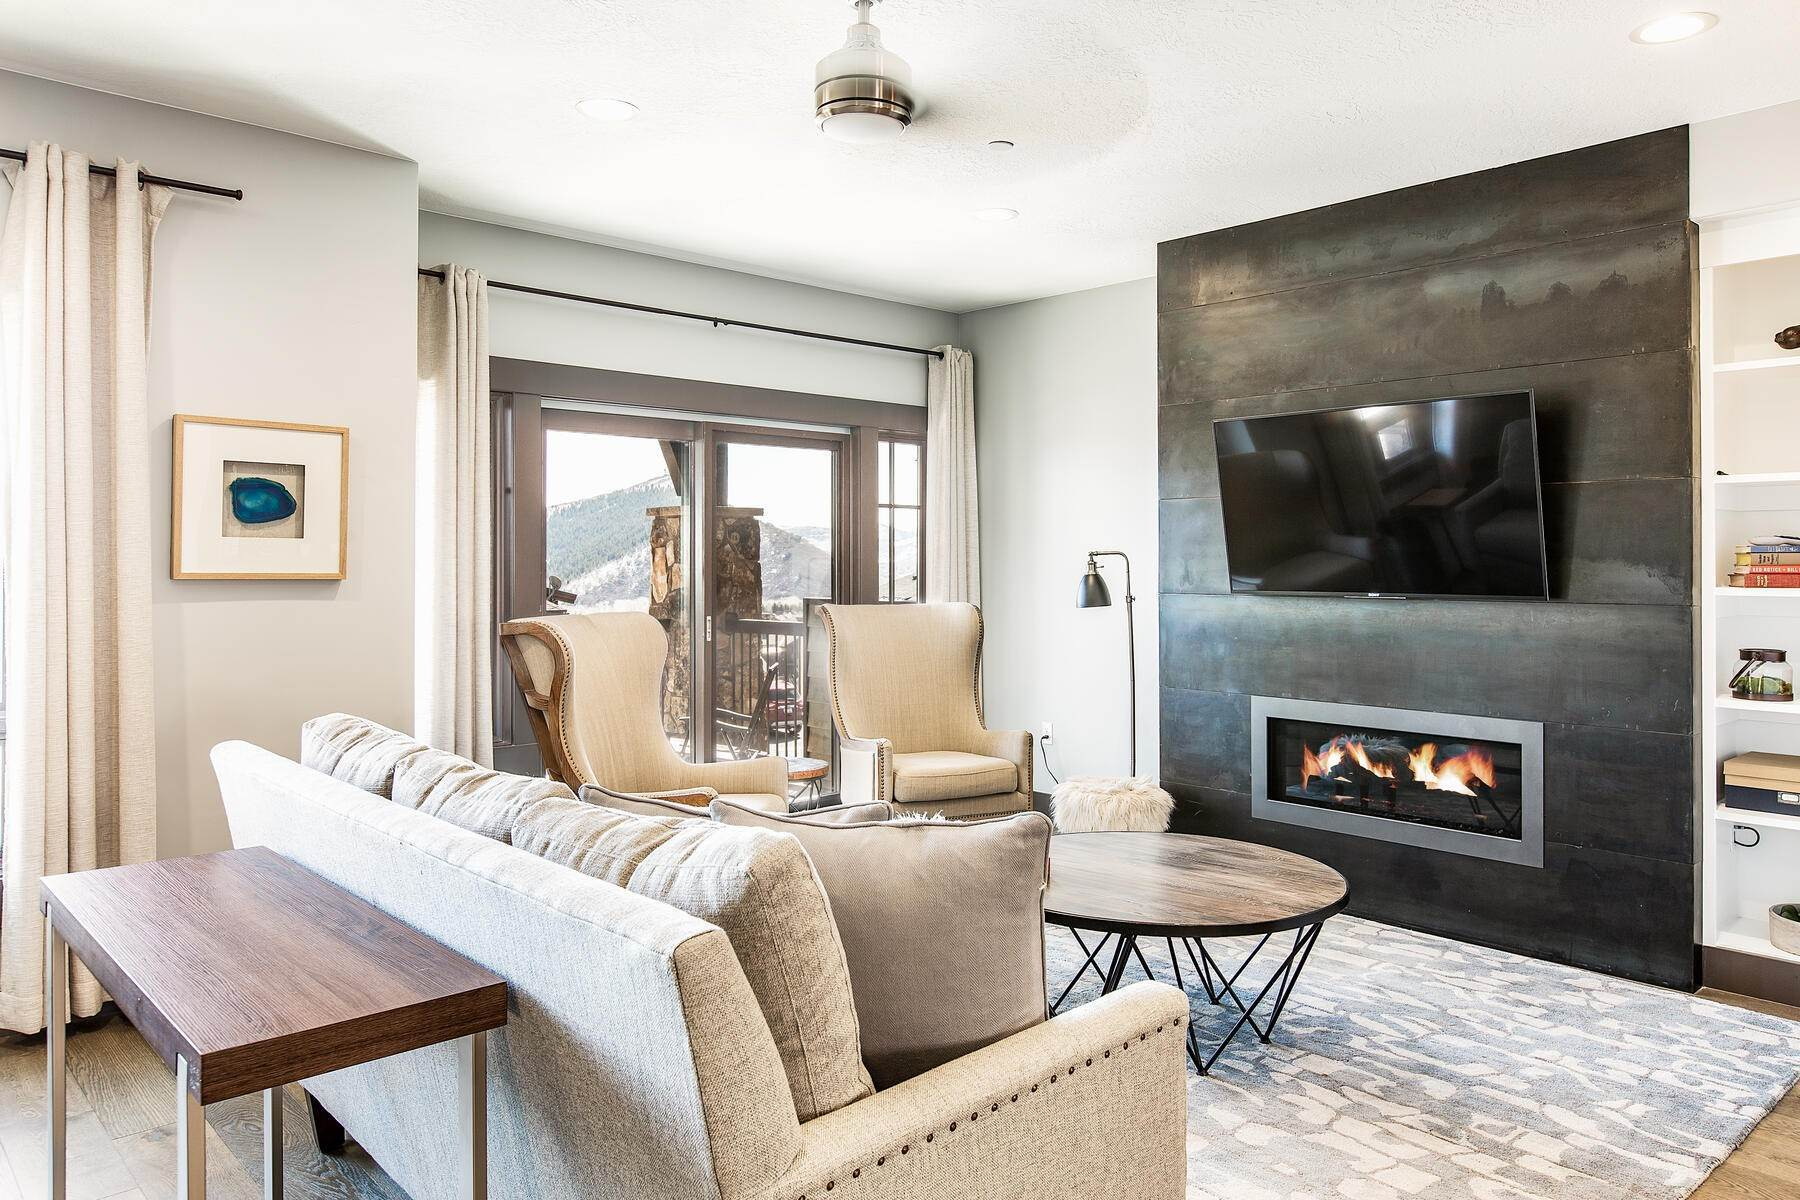 4. townhouses for Sale at Walk to Skiing from this Turn-Key Canyons Village Townhome 4221 Fairway Lane, D-4 Park City, Utah 84098 United States